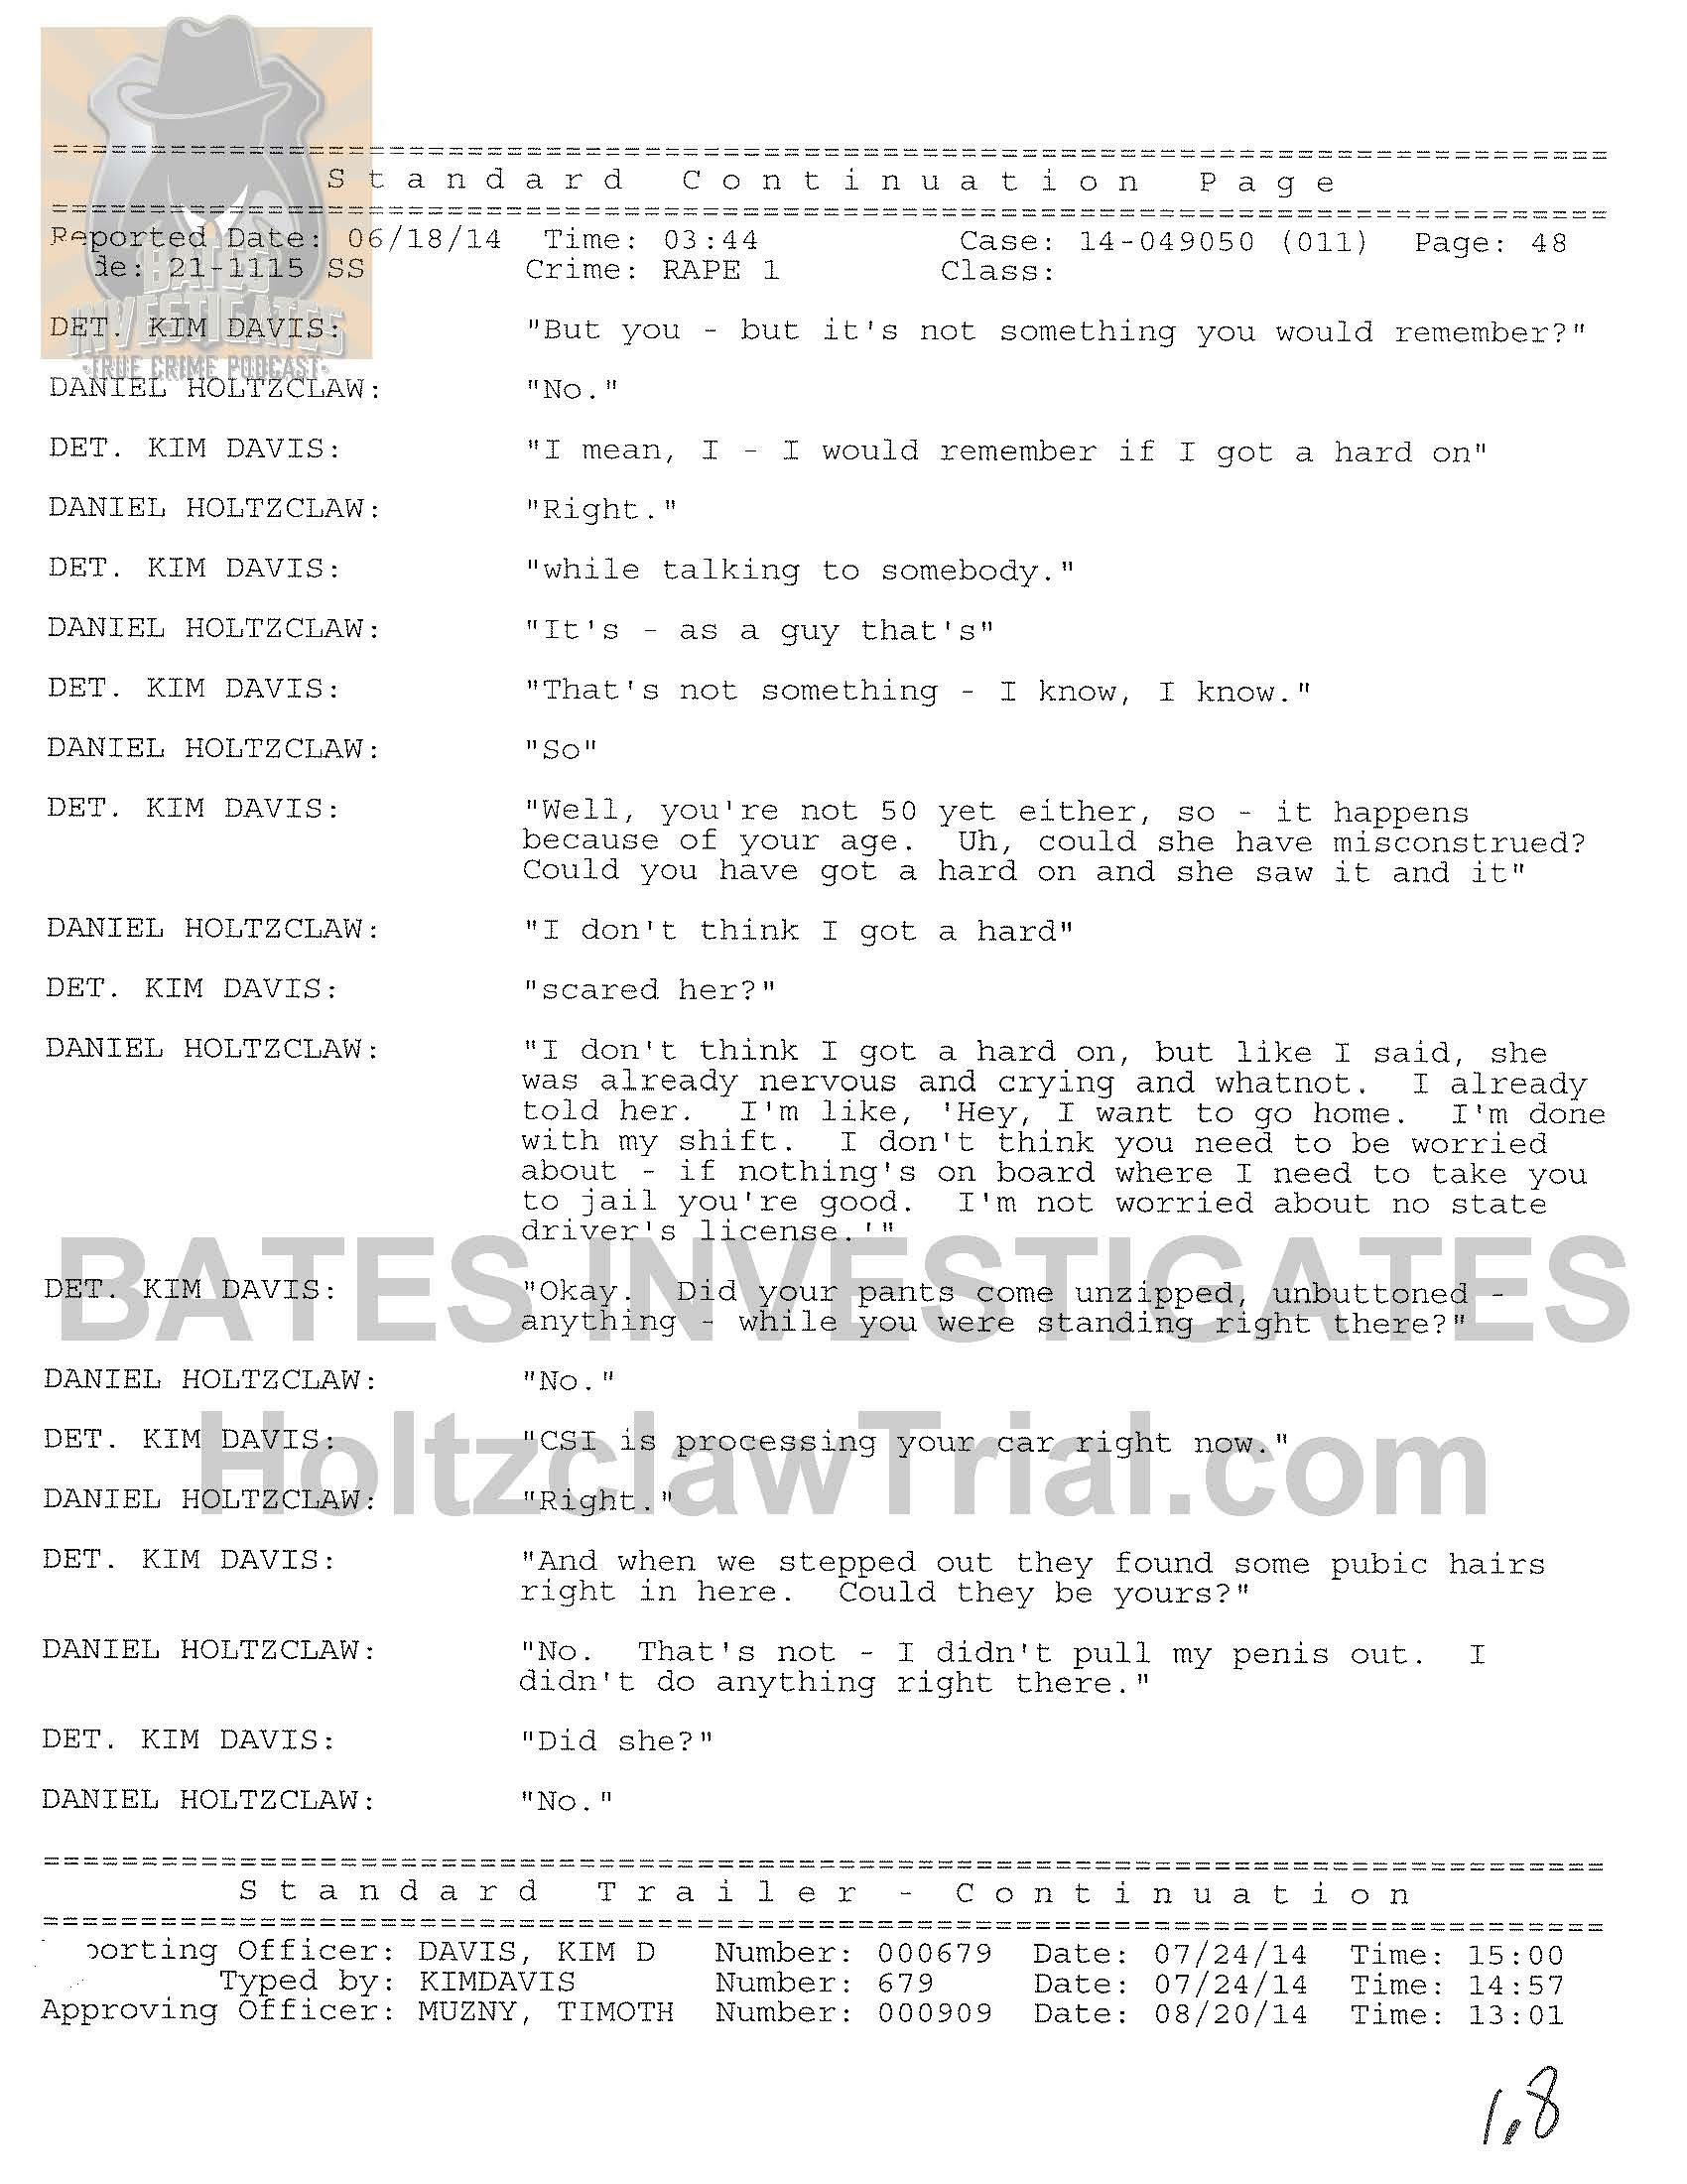 Holtzclaw Interrogation Transcript - Ep02 Redacted_Page_48.jpg